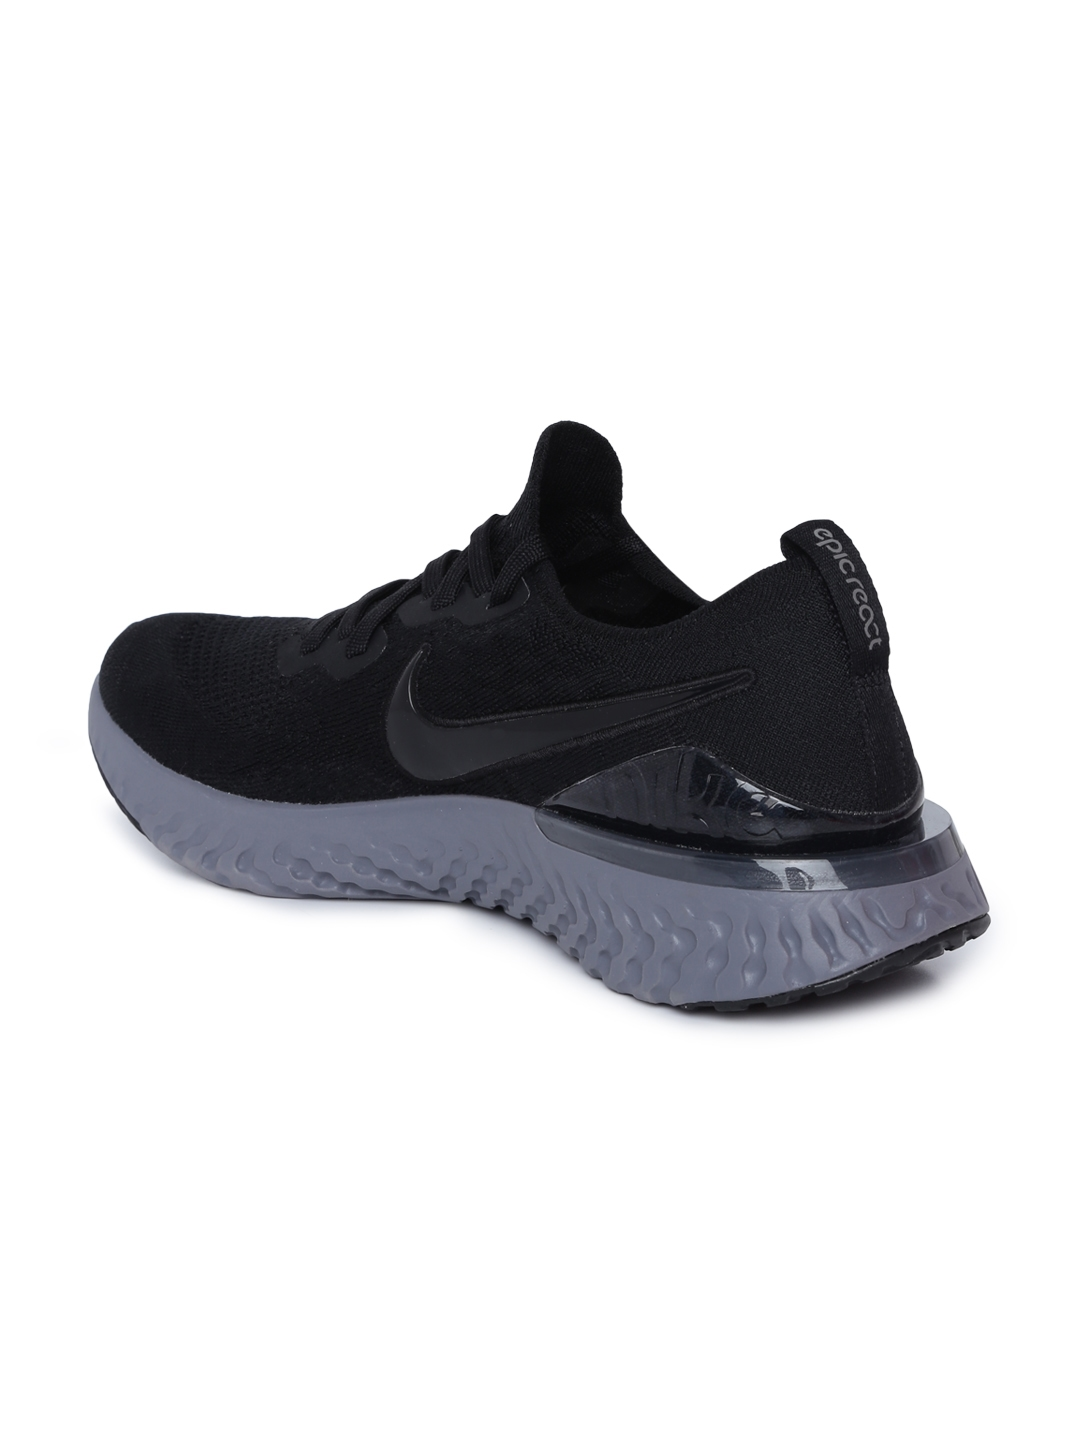 ff7f07c28a6c Buy Nike Men Black EPIC REACT FLYKNIT 2 Running Shoes - Sports Shoes ...